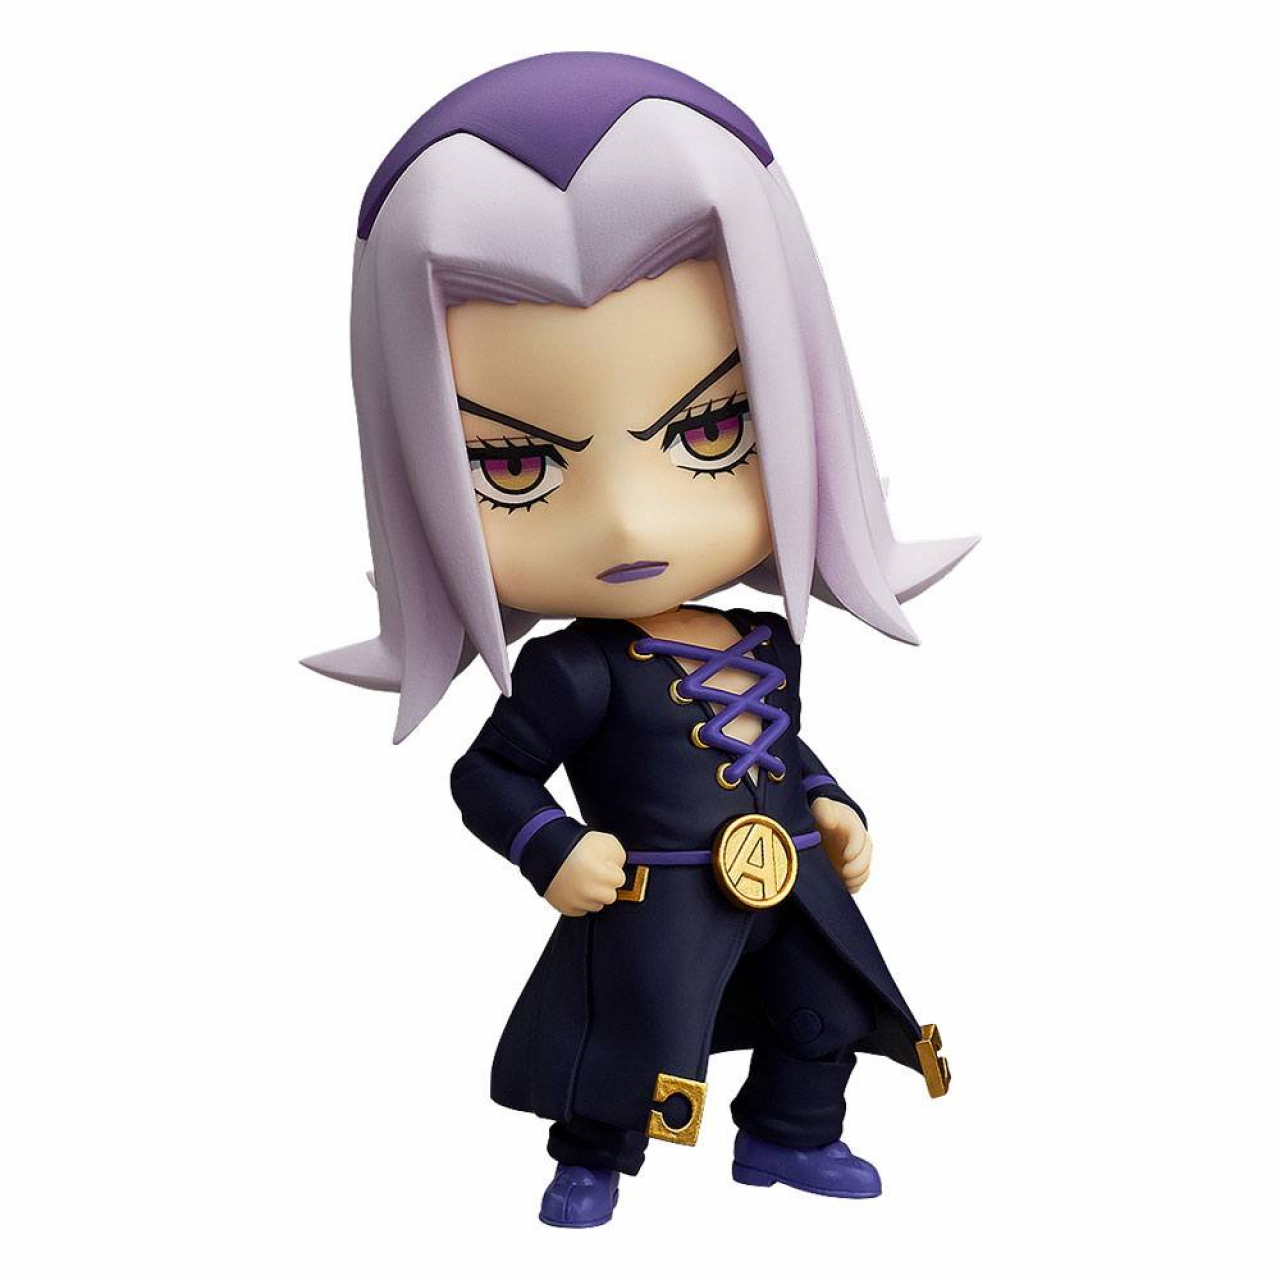 Jojo's Bizarre Adventure Golden Wind Nendoroid Action Figure Leone Abbacchio 10 cm